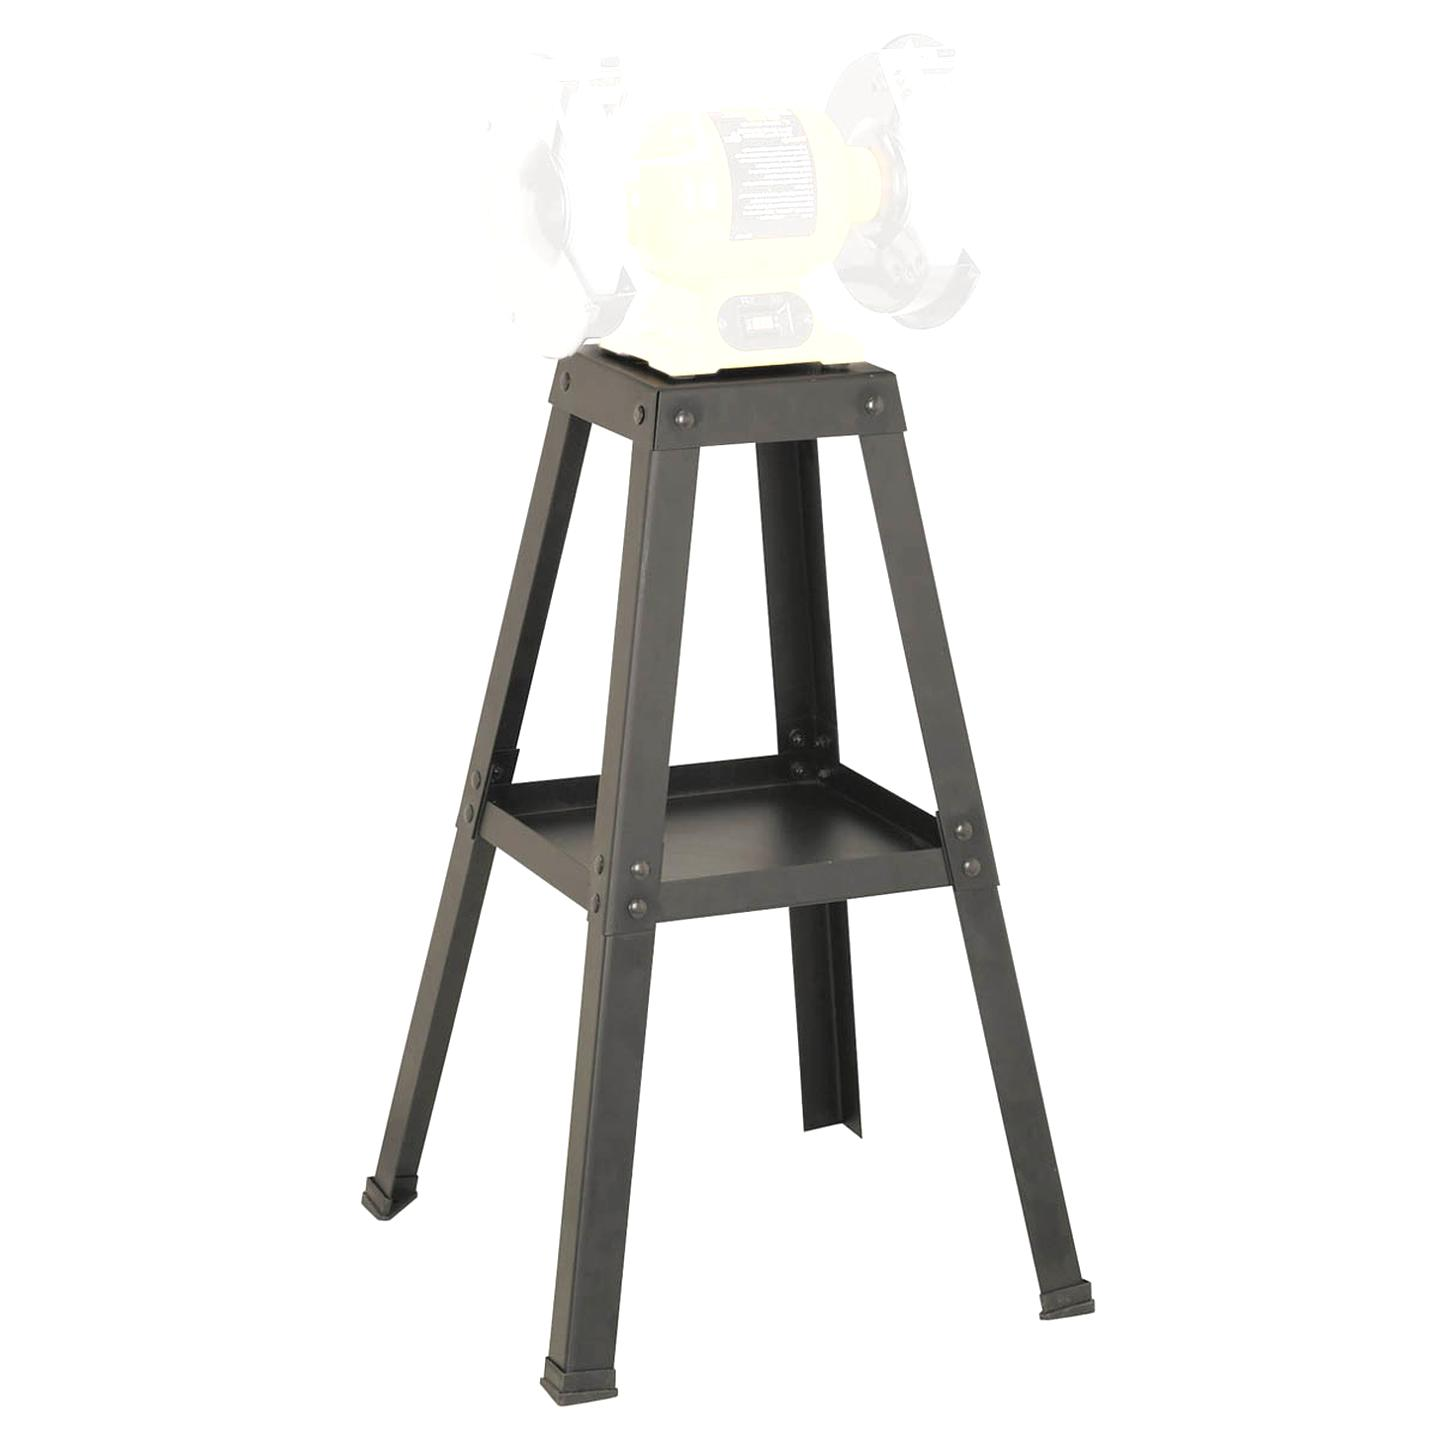 Surprising Bench Grinder Stand For Sale Only 3 Left At 60 Ocoug Best Dining Table And Chair Ideas Images Ocougorg